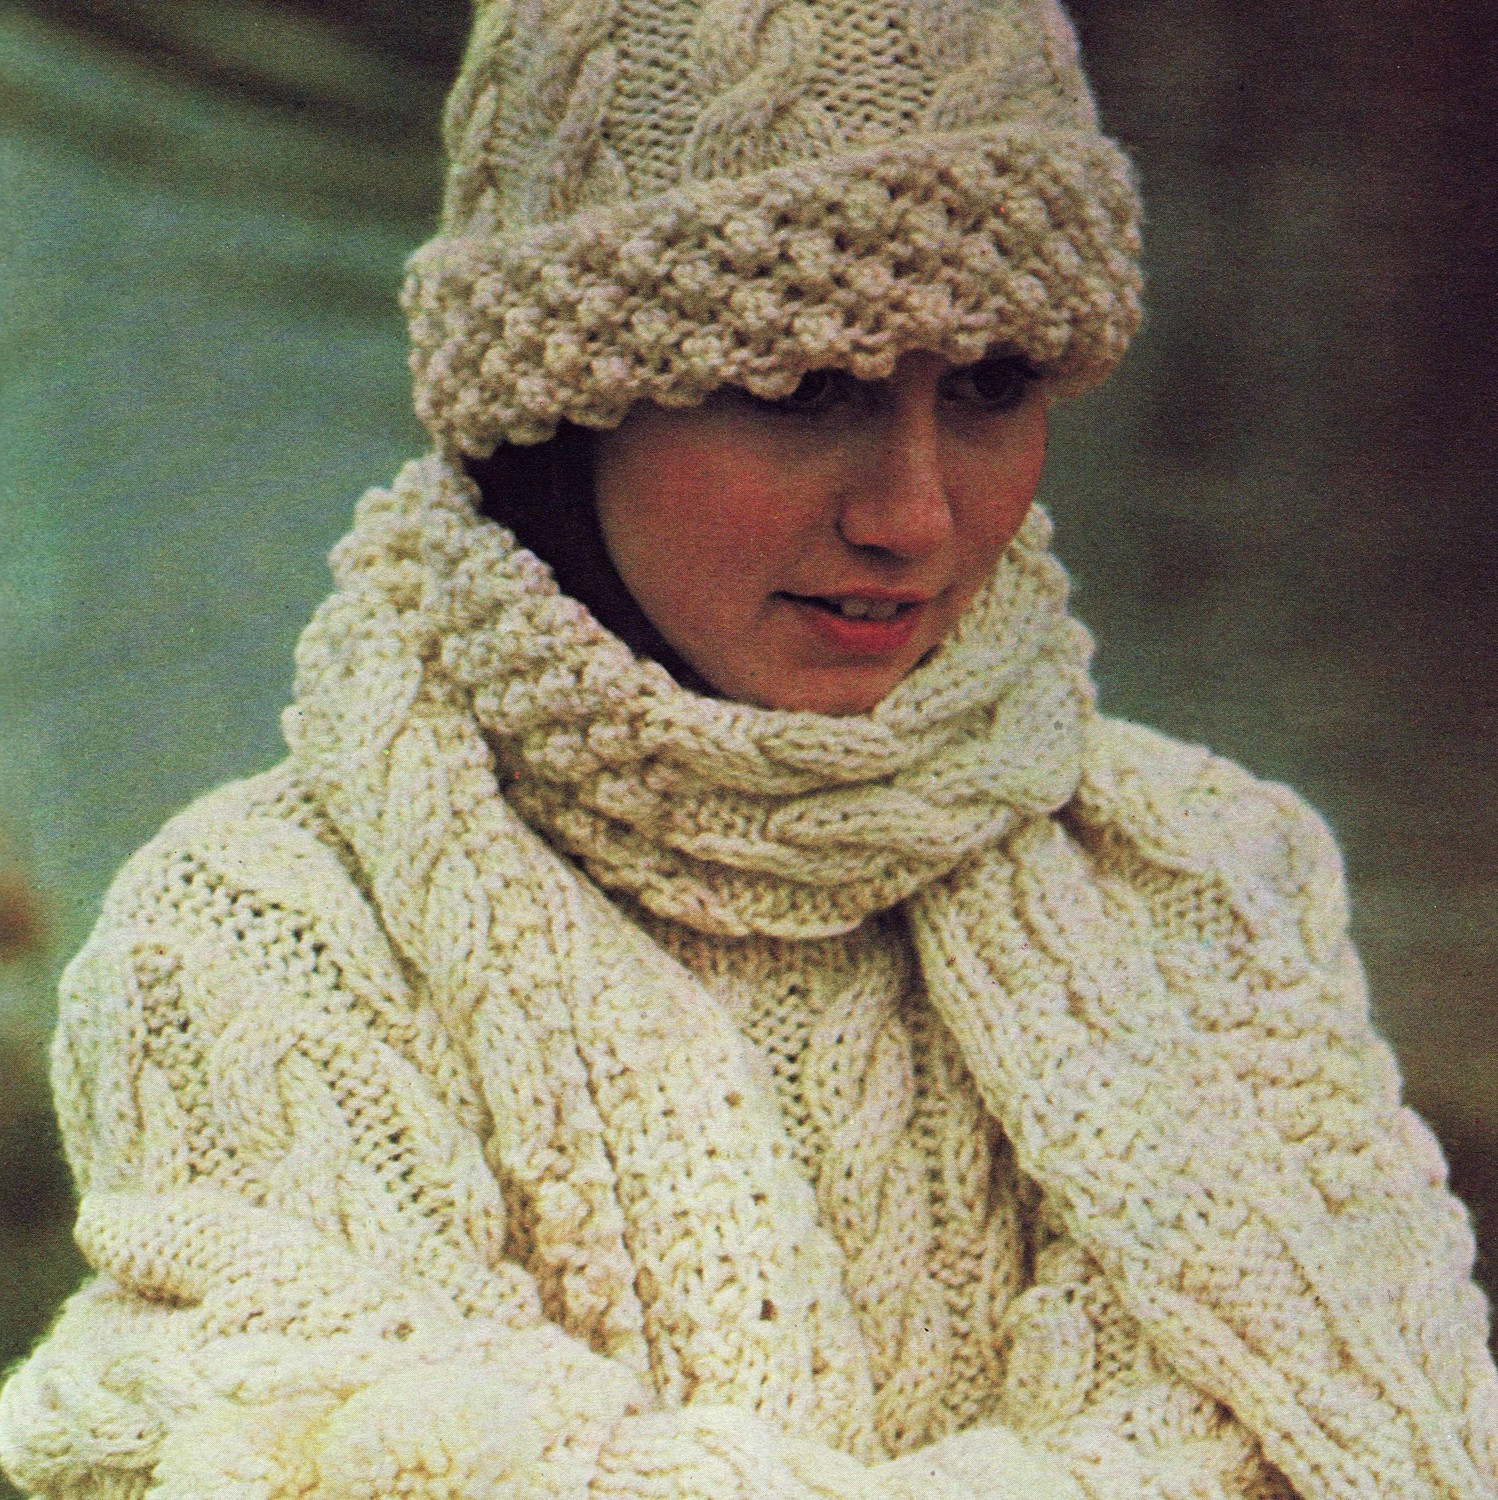 Best Of Scarf and Hat Knitting Patterns Knitting and Crochet Patterns Of Adorable 46 Ideas Knitting and Crochet Patterns